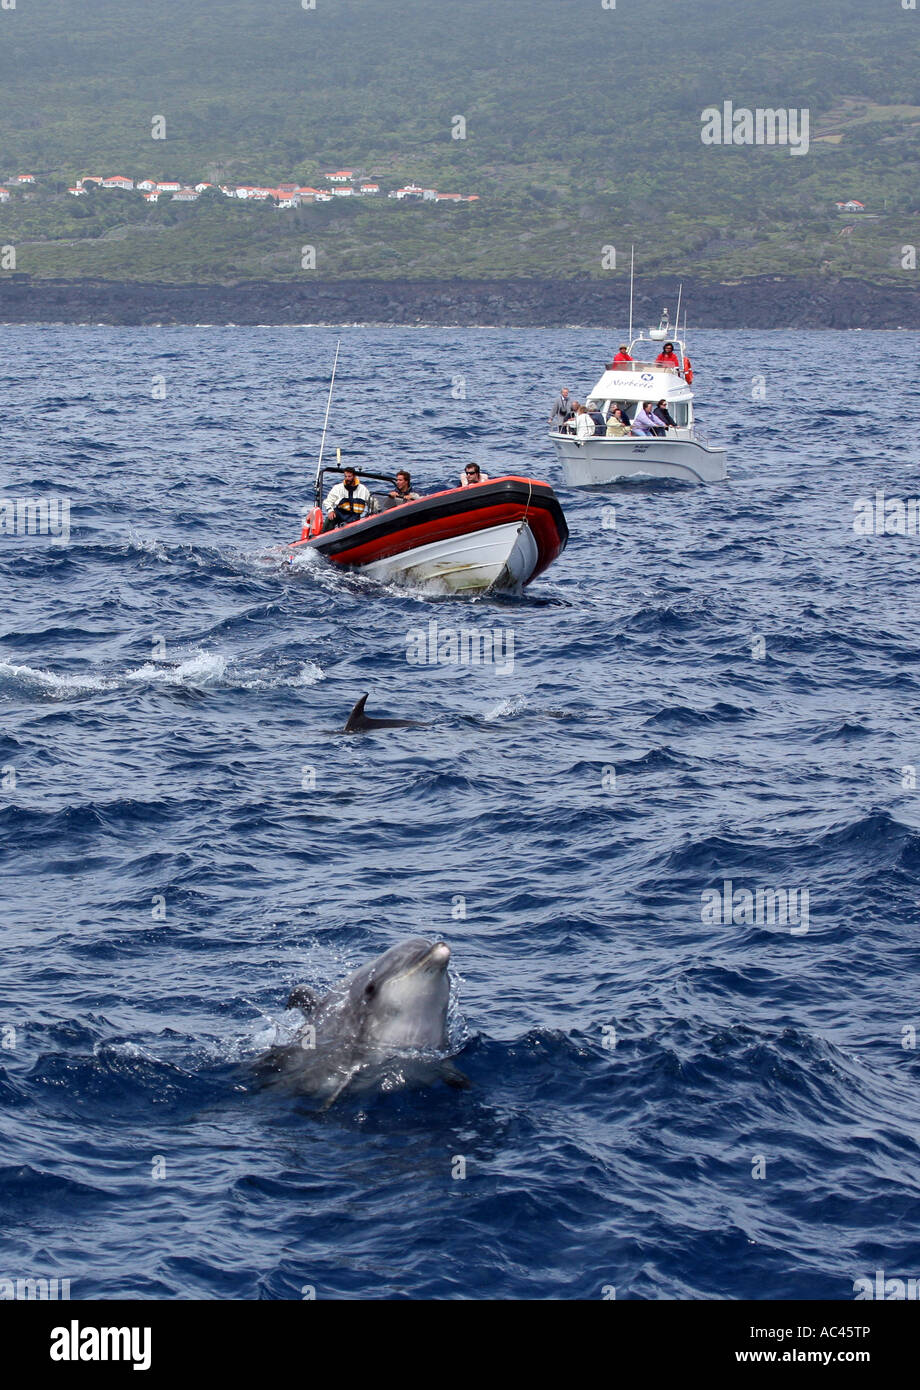 People dolphin watching in two boats watch bottlenose dolphins, the Azores, Atlantic Ocean - Stock Image